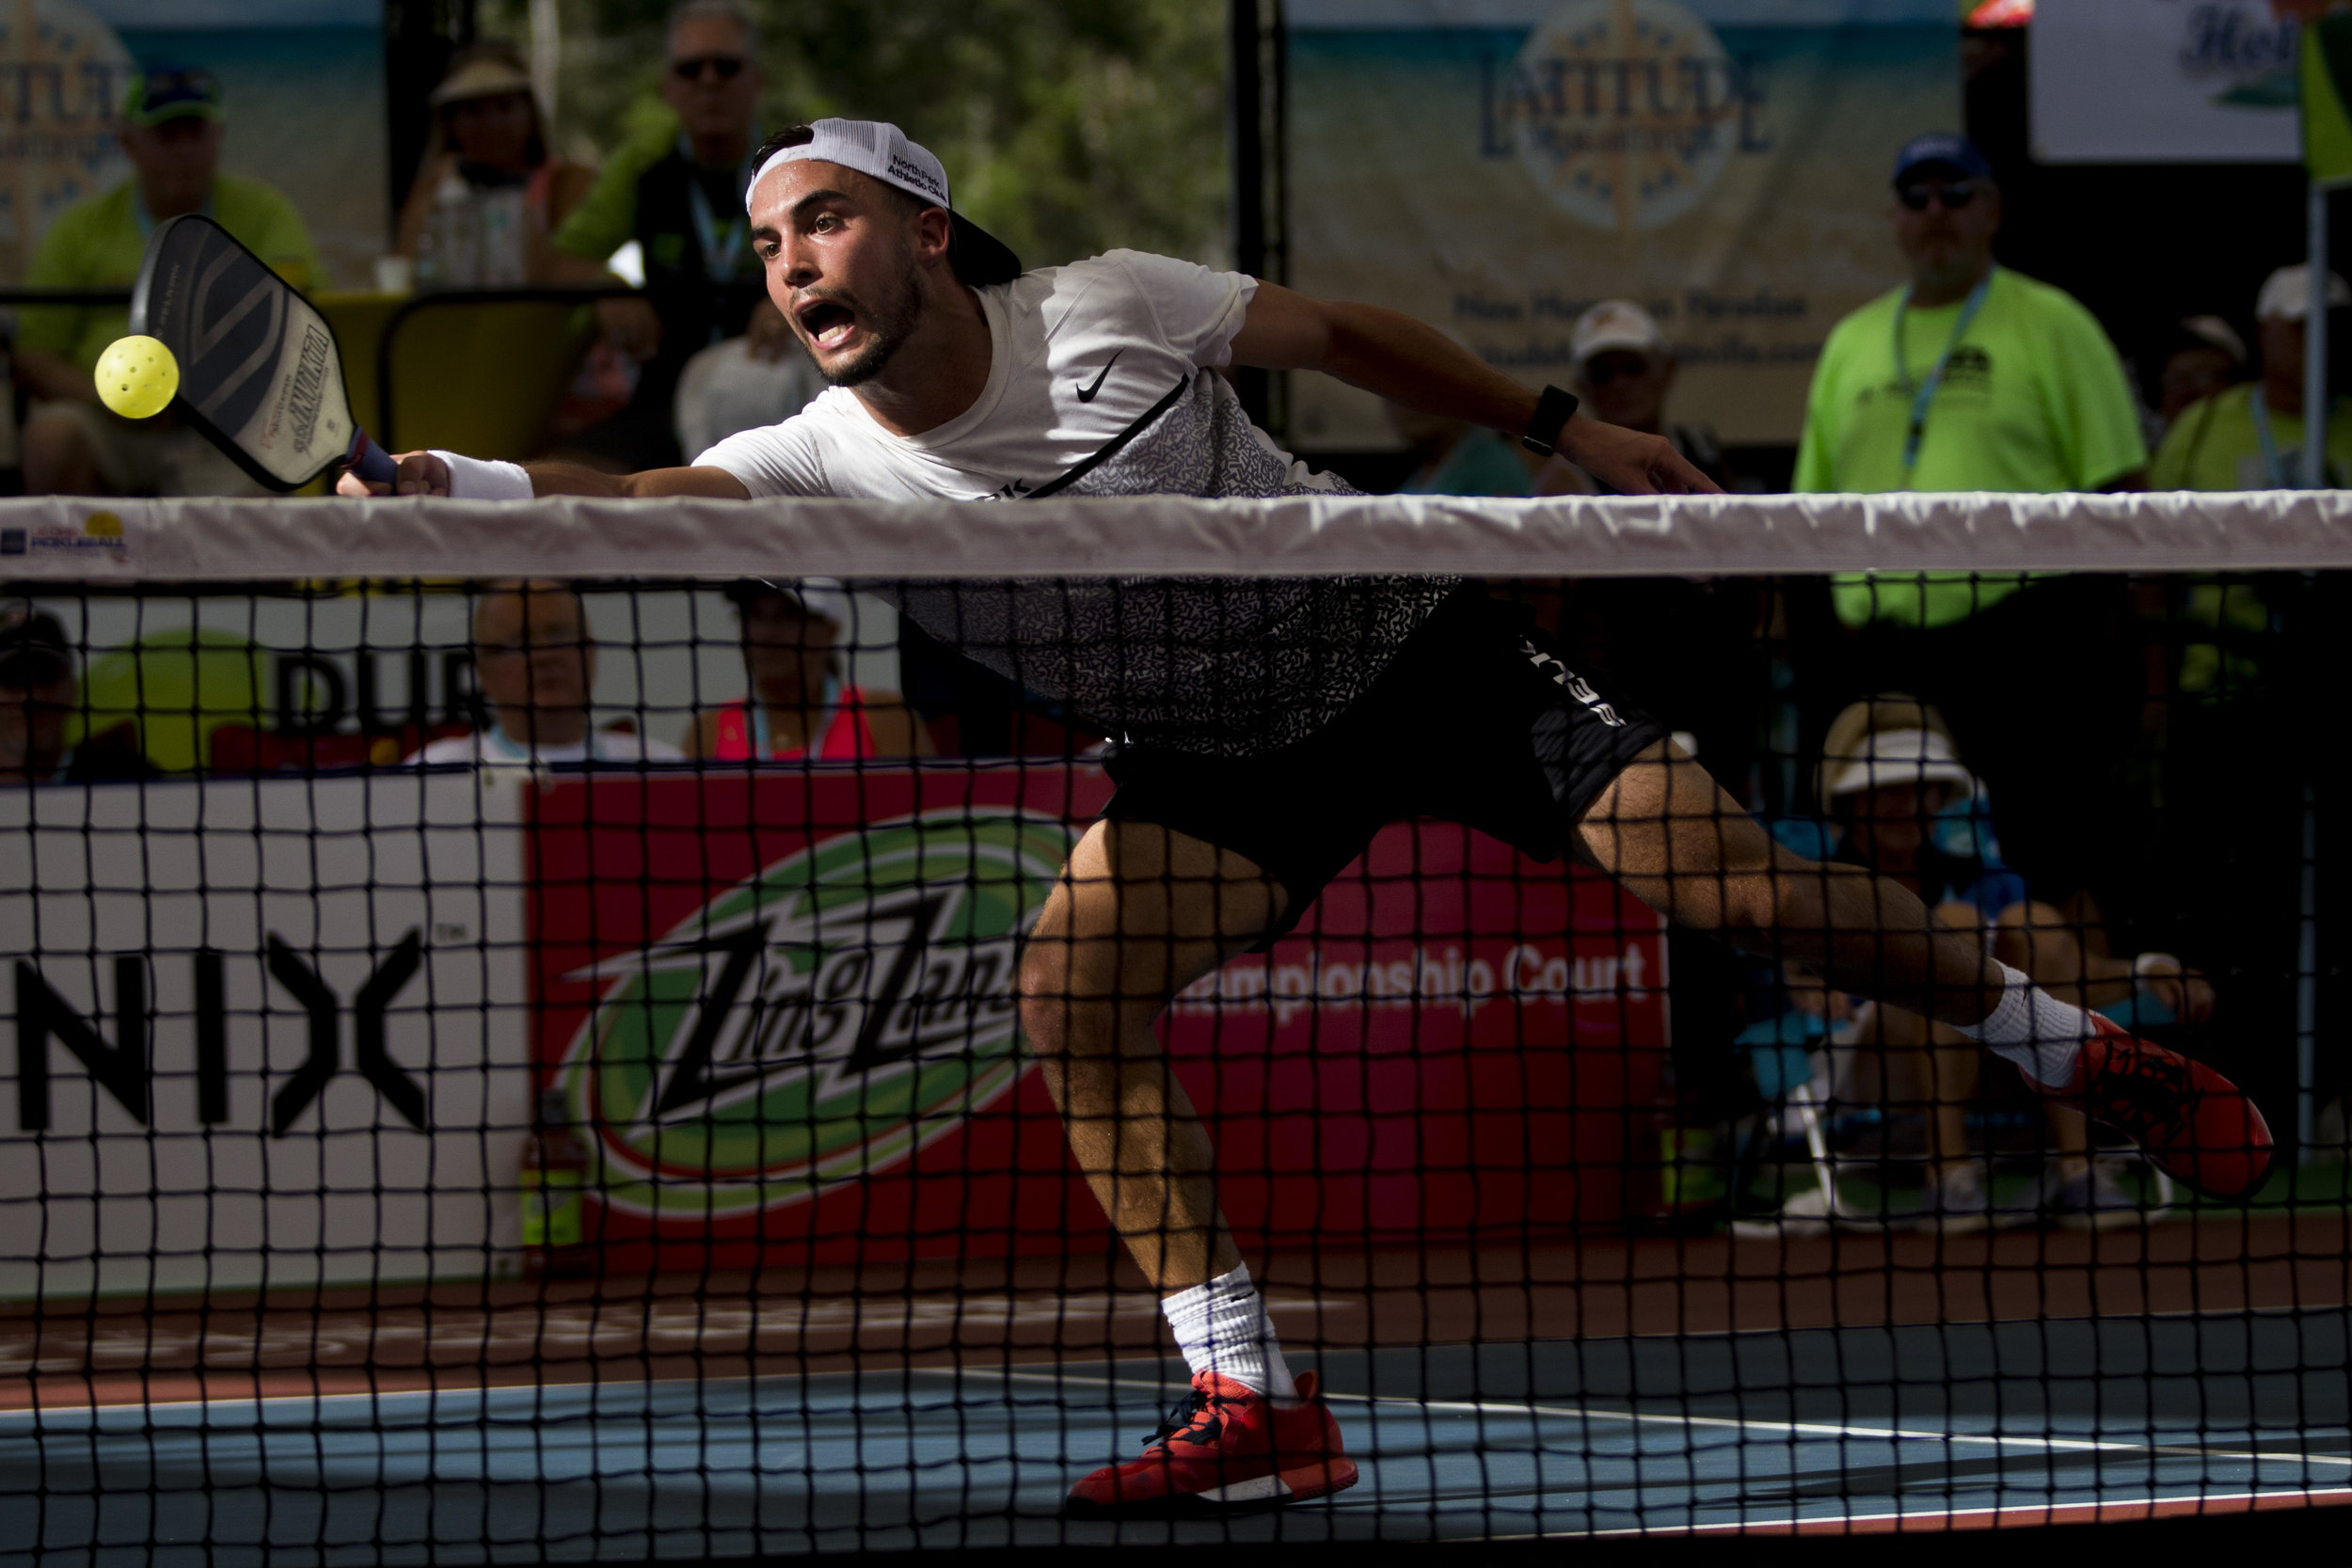 Tyson McGuffin during the men's Pro division Pickleball Championship match during the first day of the 2018 U.S. Open Pickleball Championships at East Naples Community Park Sunday, April 22, 2018 in Naples. McGuffin would defeat Fort Myers local Kyle Yates in three sets.